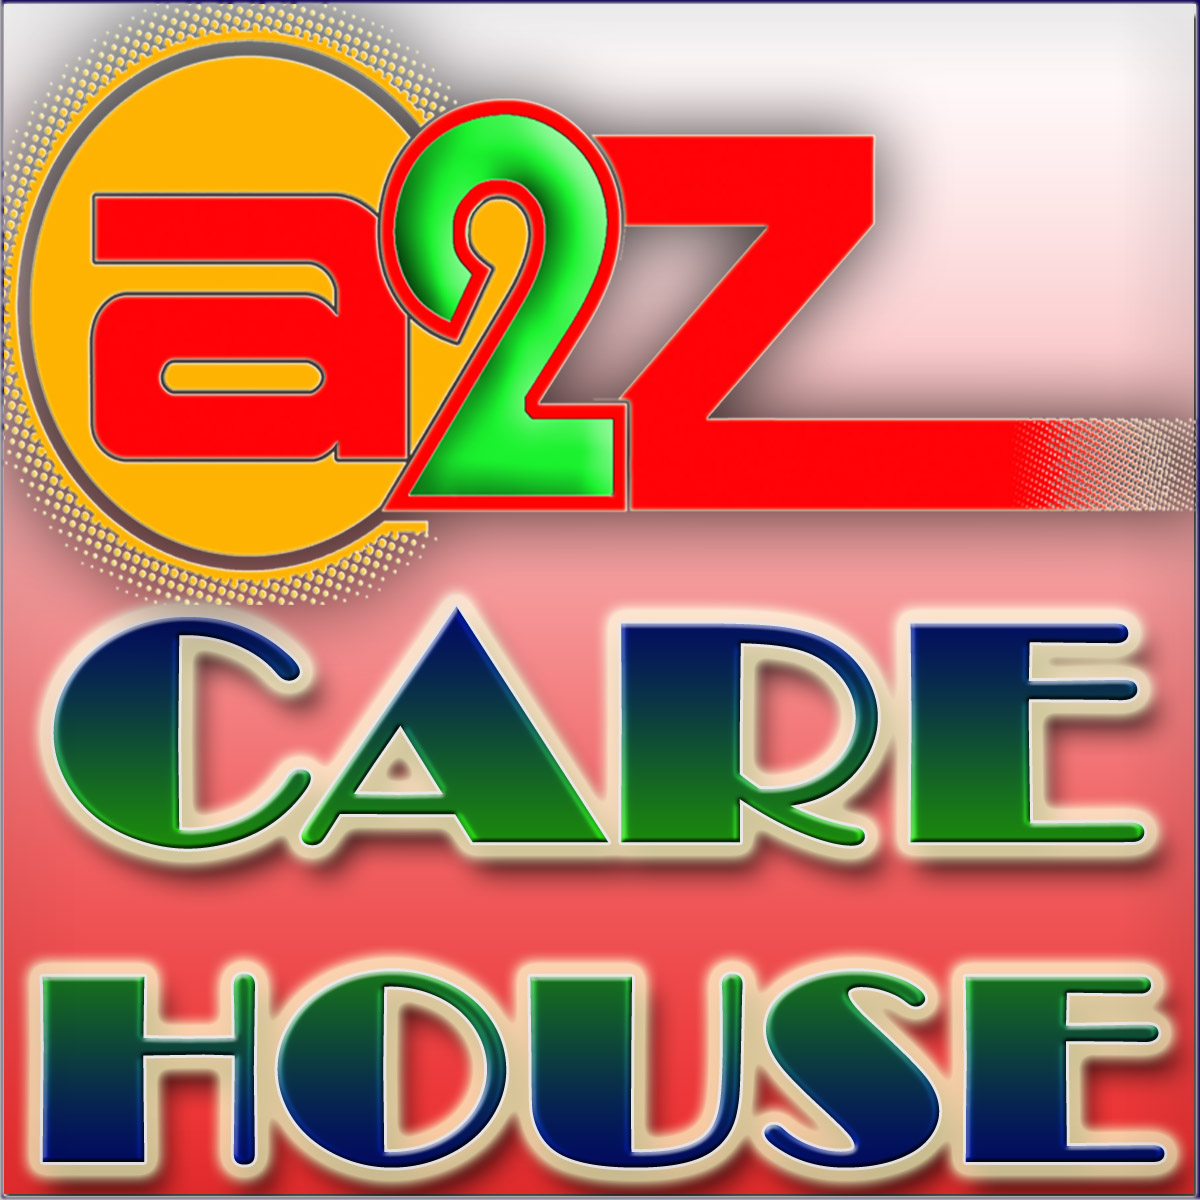 a2z Care House Logo